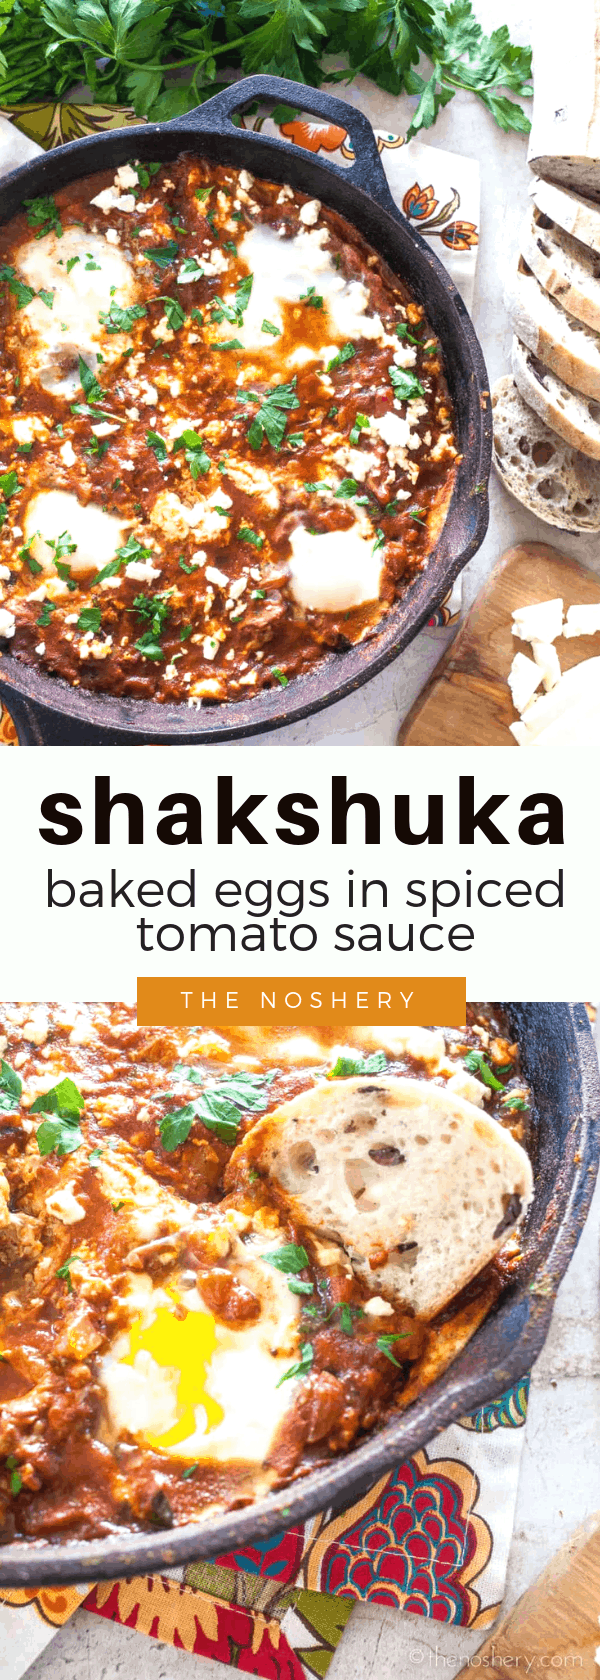 Shakshuka | Baked Eggs in Spiced Tomato Sauce | A dish enjoyed throughout the Mediterranean and Middle Eastern countries. It's a dish of eggs baked in a flavorful spiced tomato sauce and served with crusty bread. So, tear off a piece of bread and dive in! | The Noshery